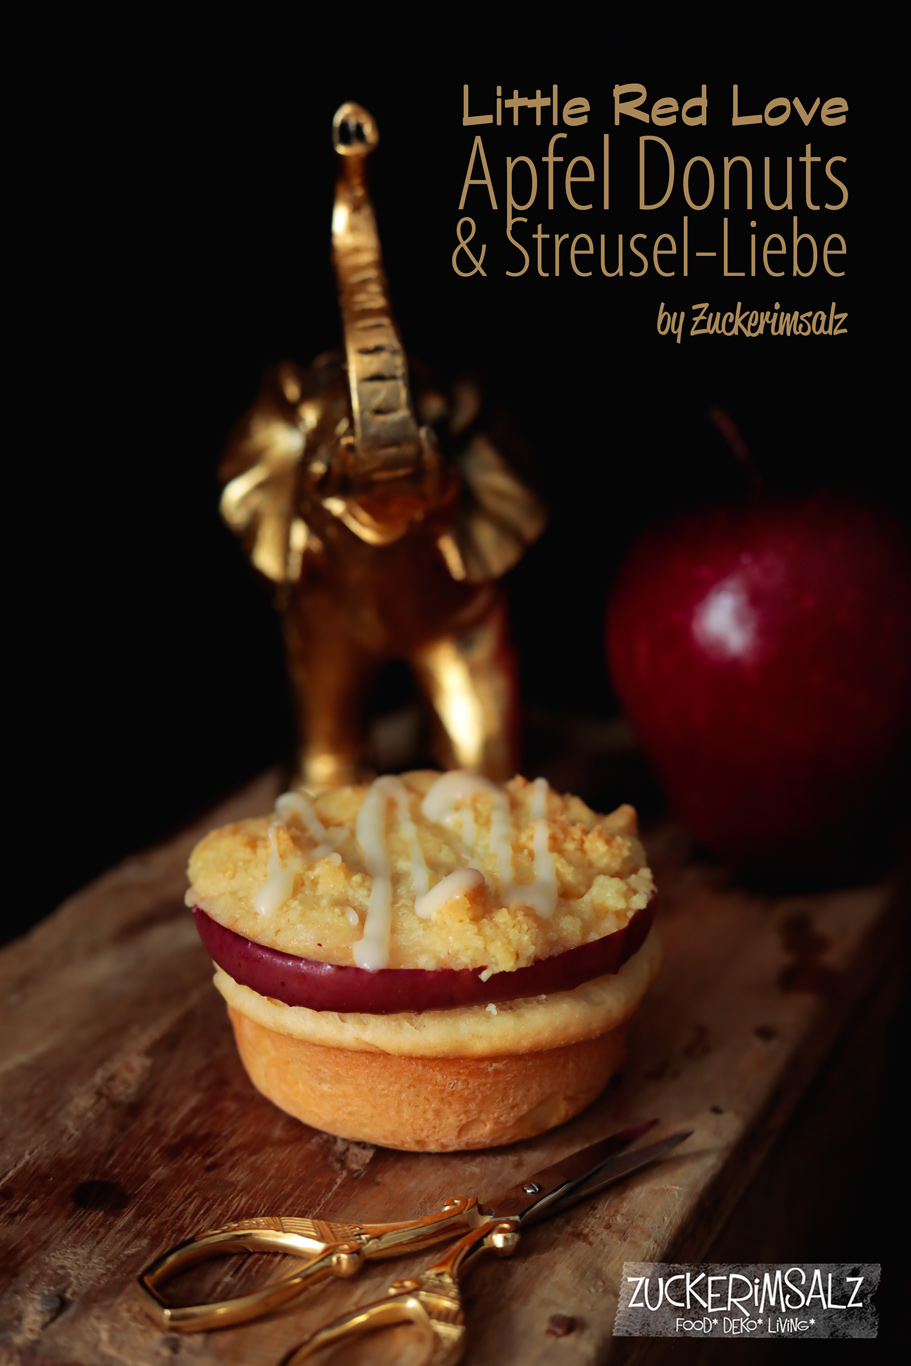 Little Red Love – Apfel Donuts & Streusel Liebe